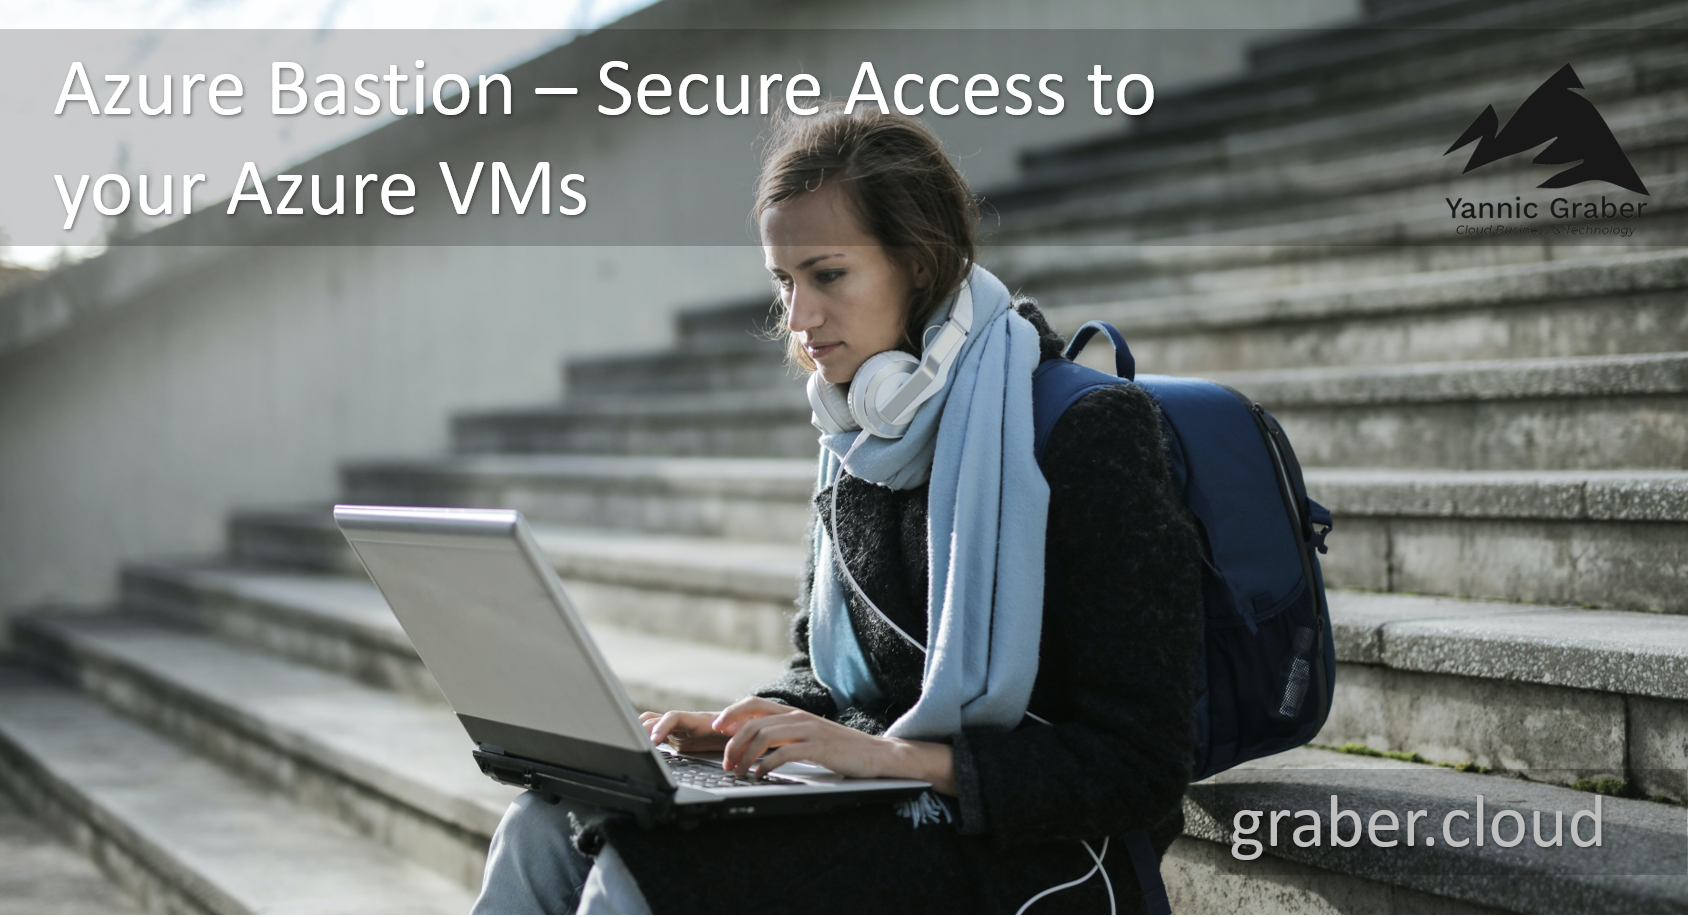 az bastion secure access vms